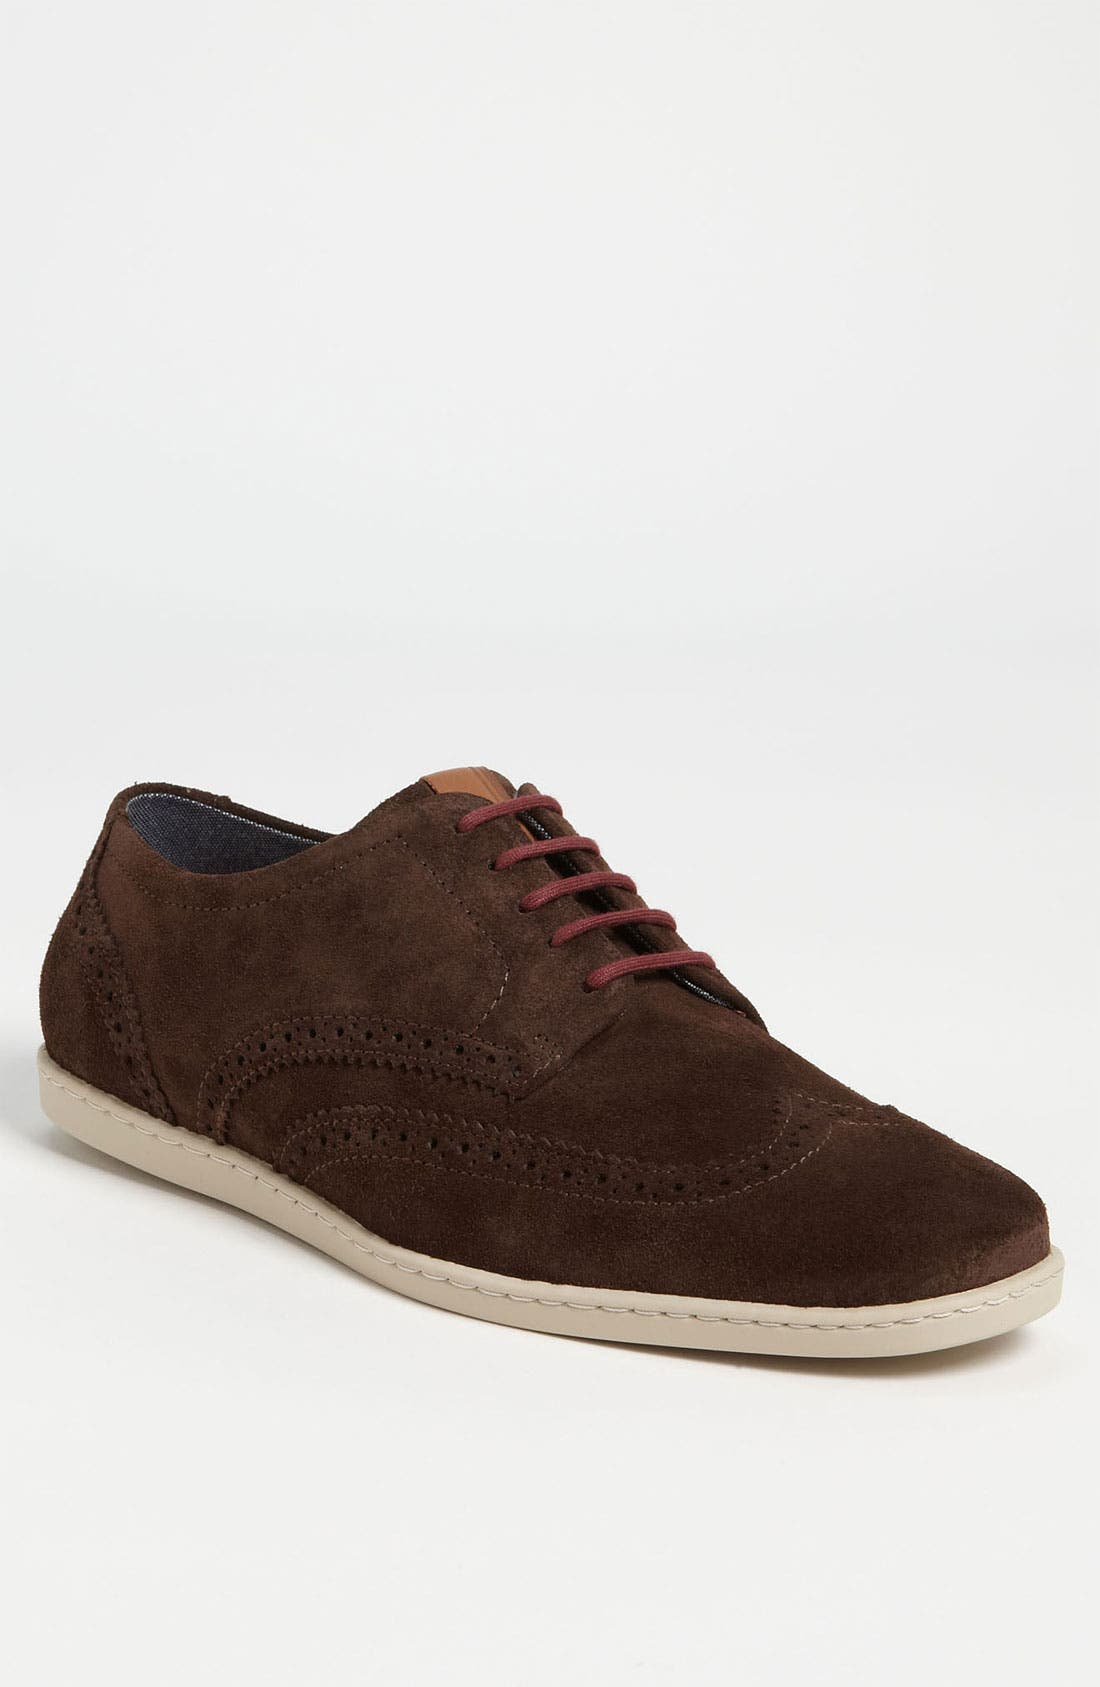 FRED PERRY 'Jacobs' Wingtip, Main, color, 201